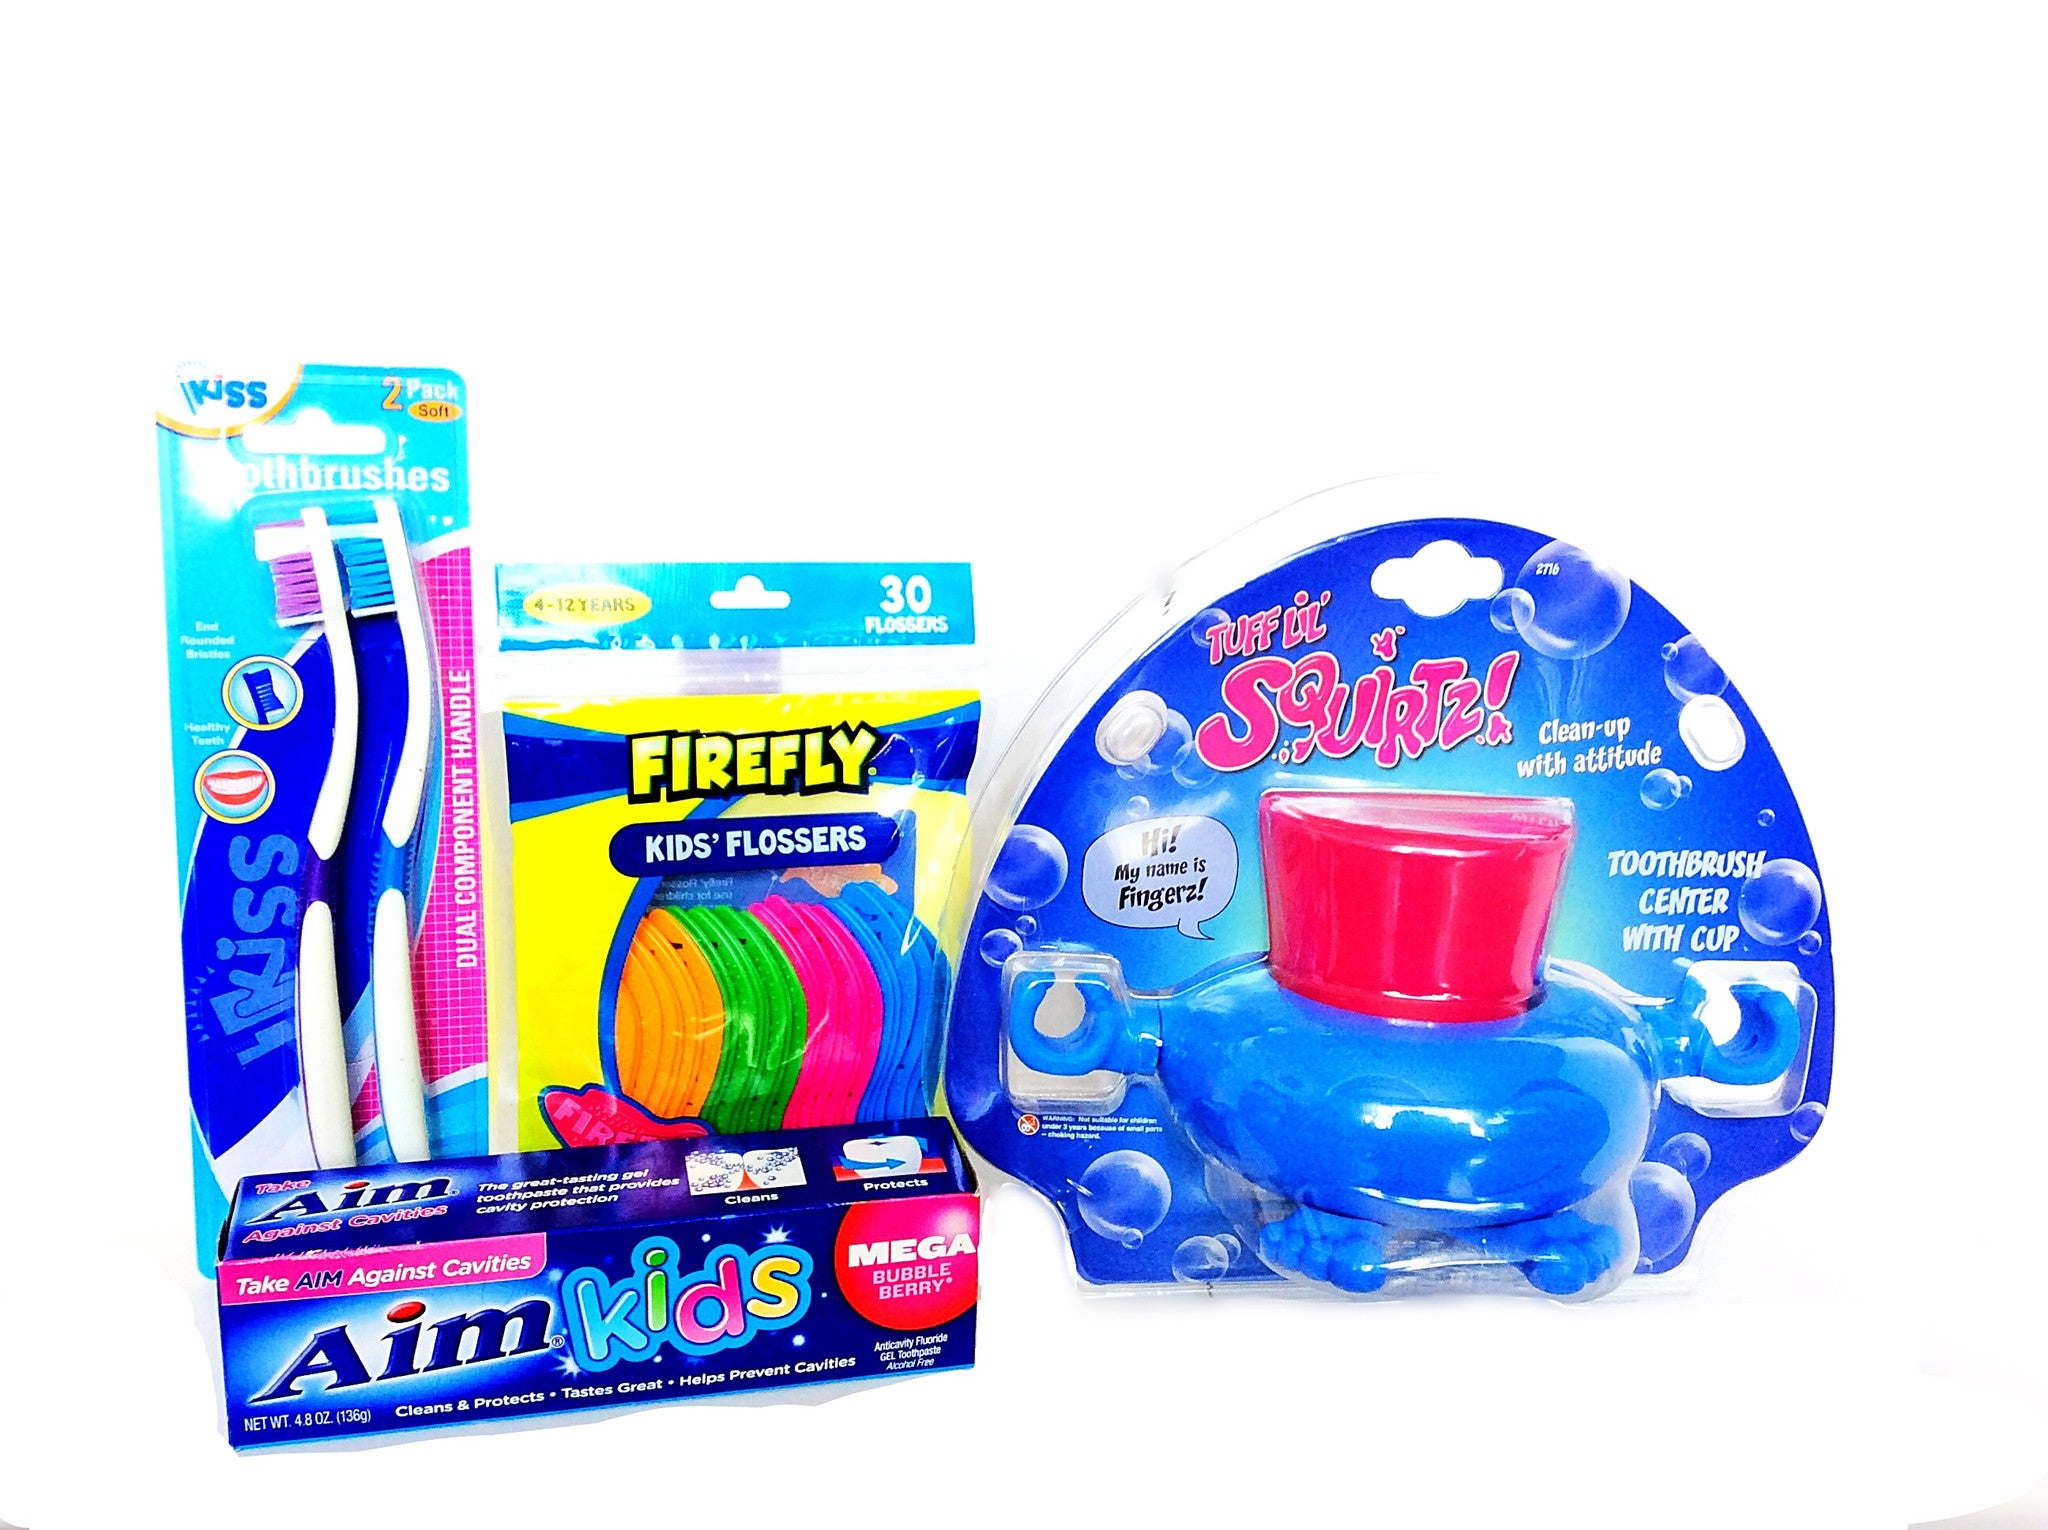 Tuff Lil Squirtz Tooth Brush Center Set - Little TroubleMakers